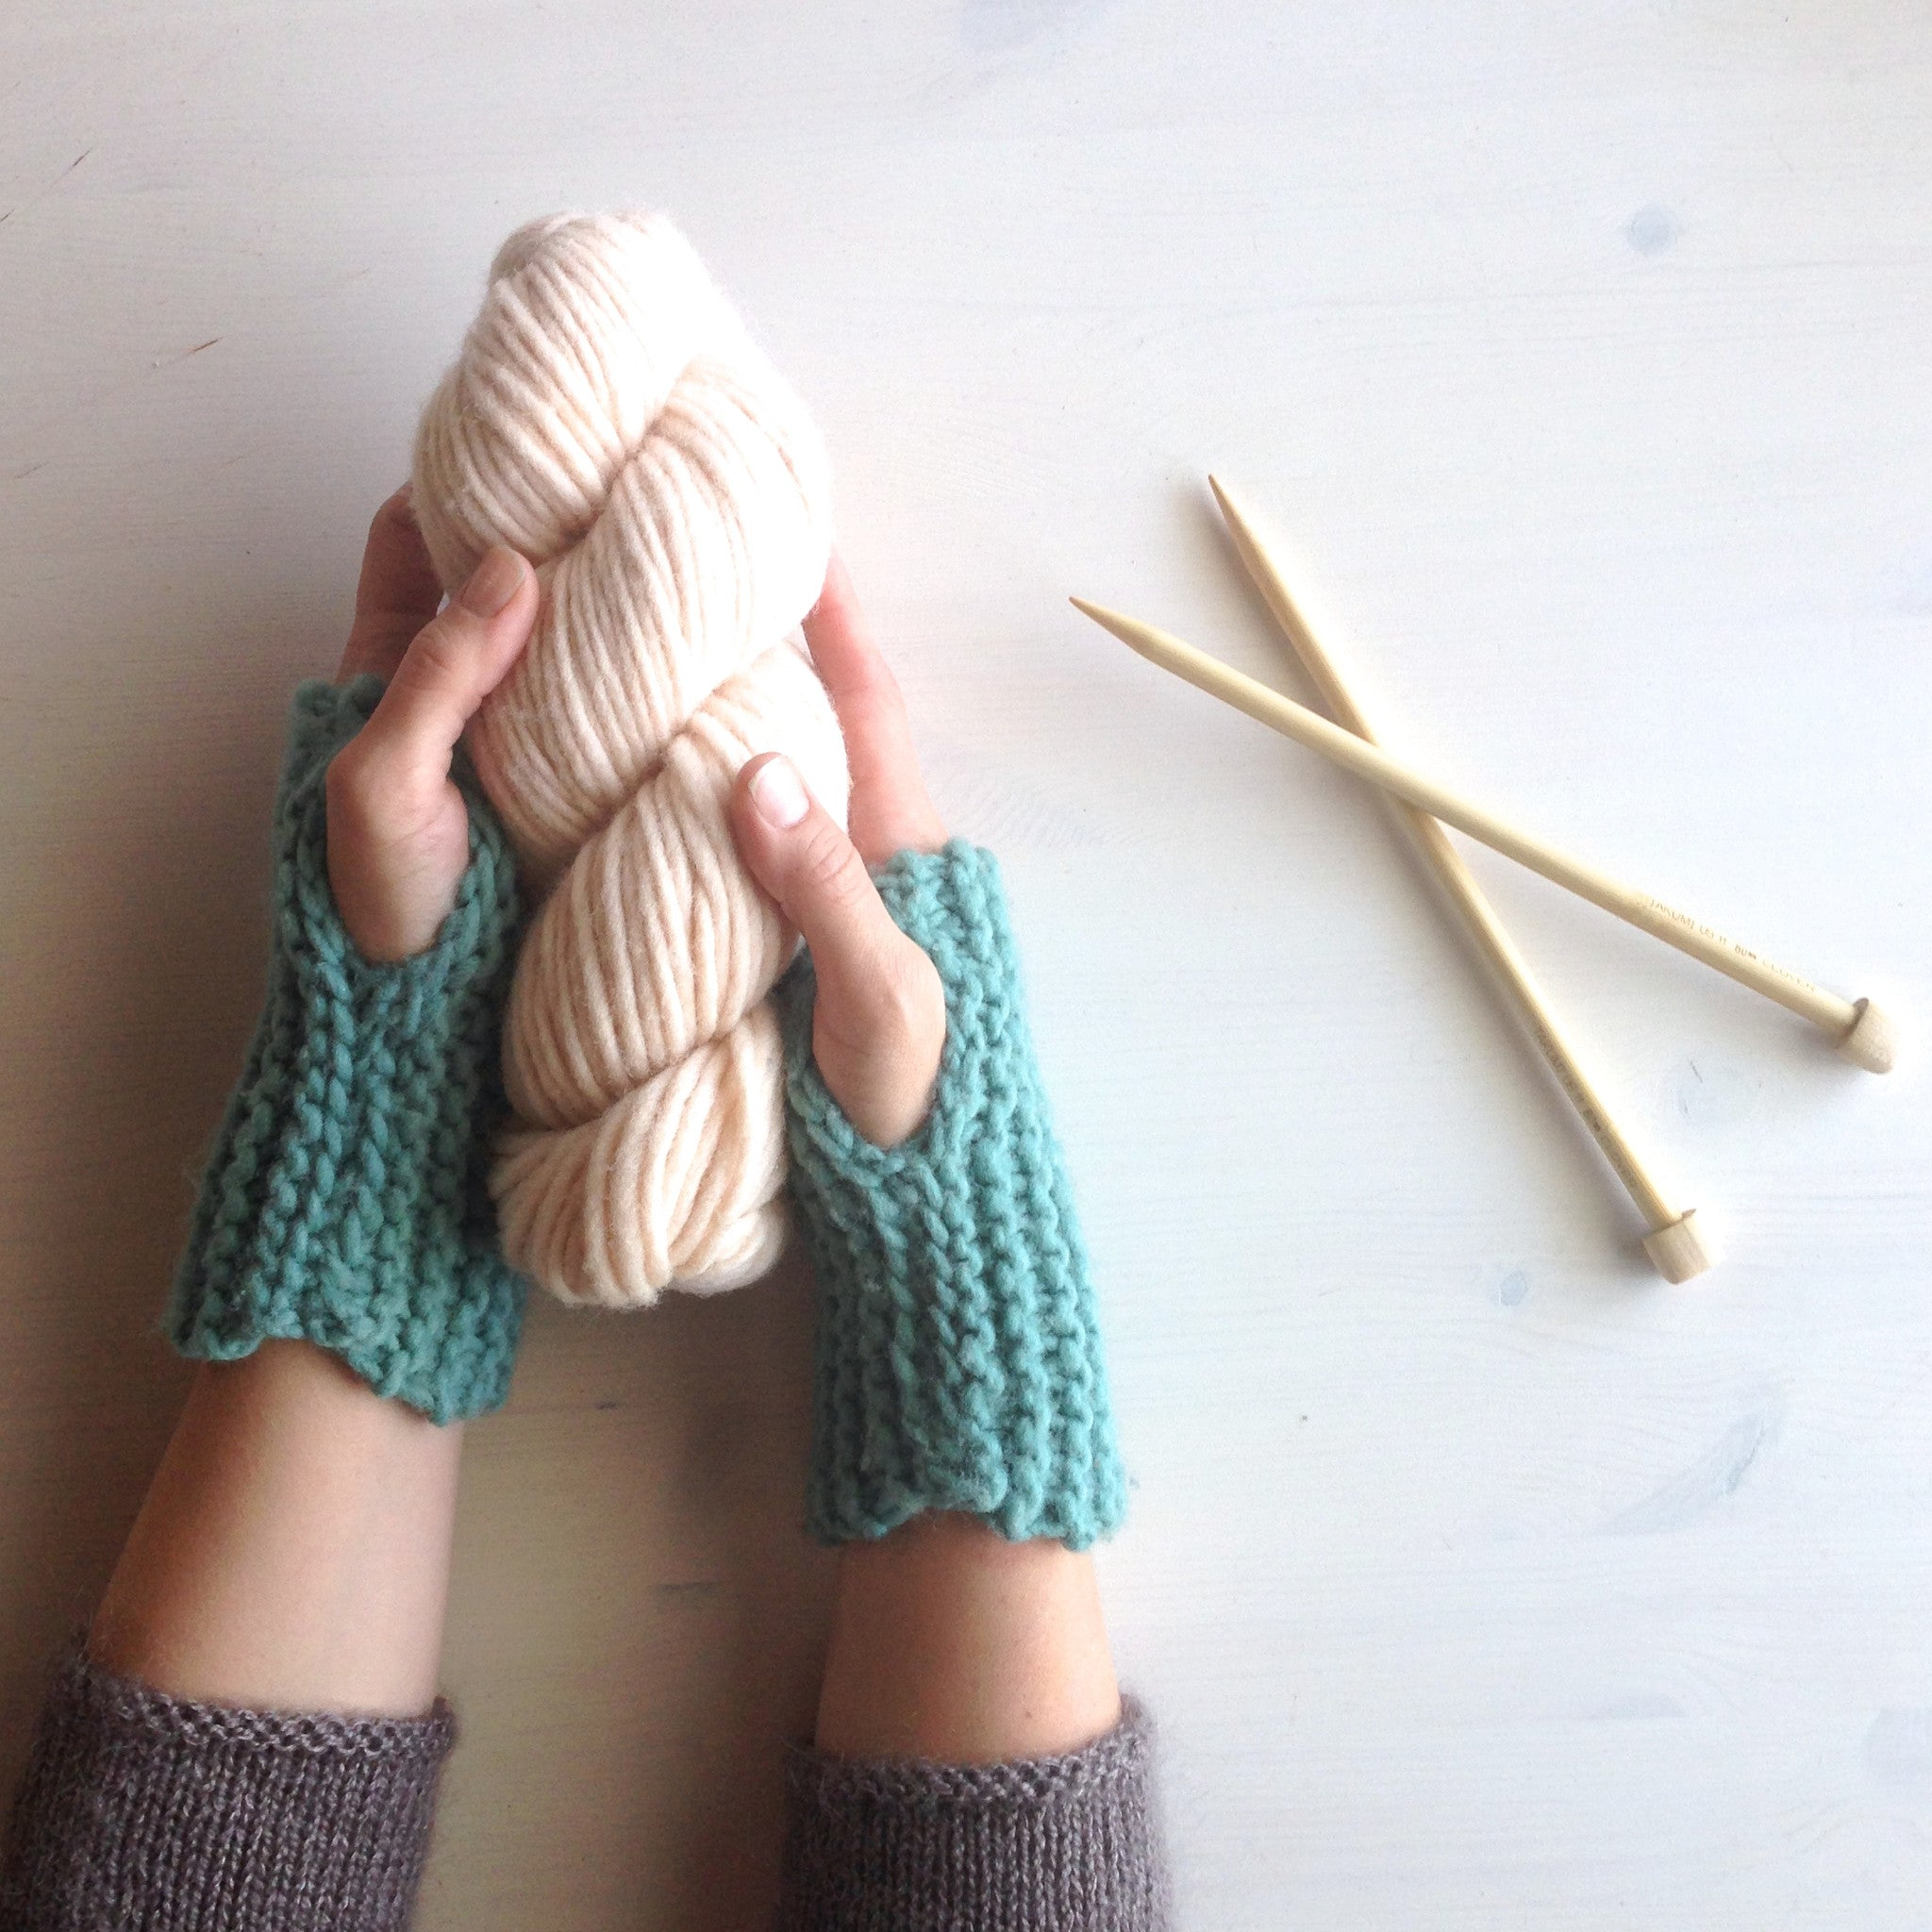 Knitting 101: Mitts - Saturday, June 9th